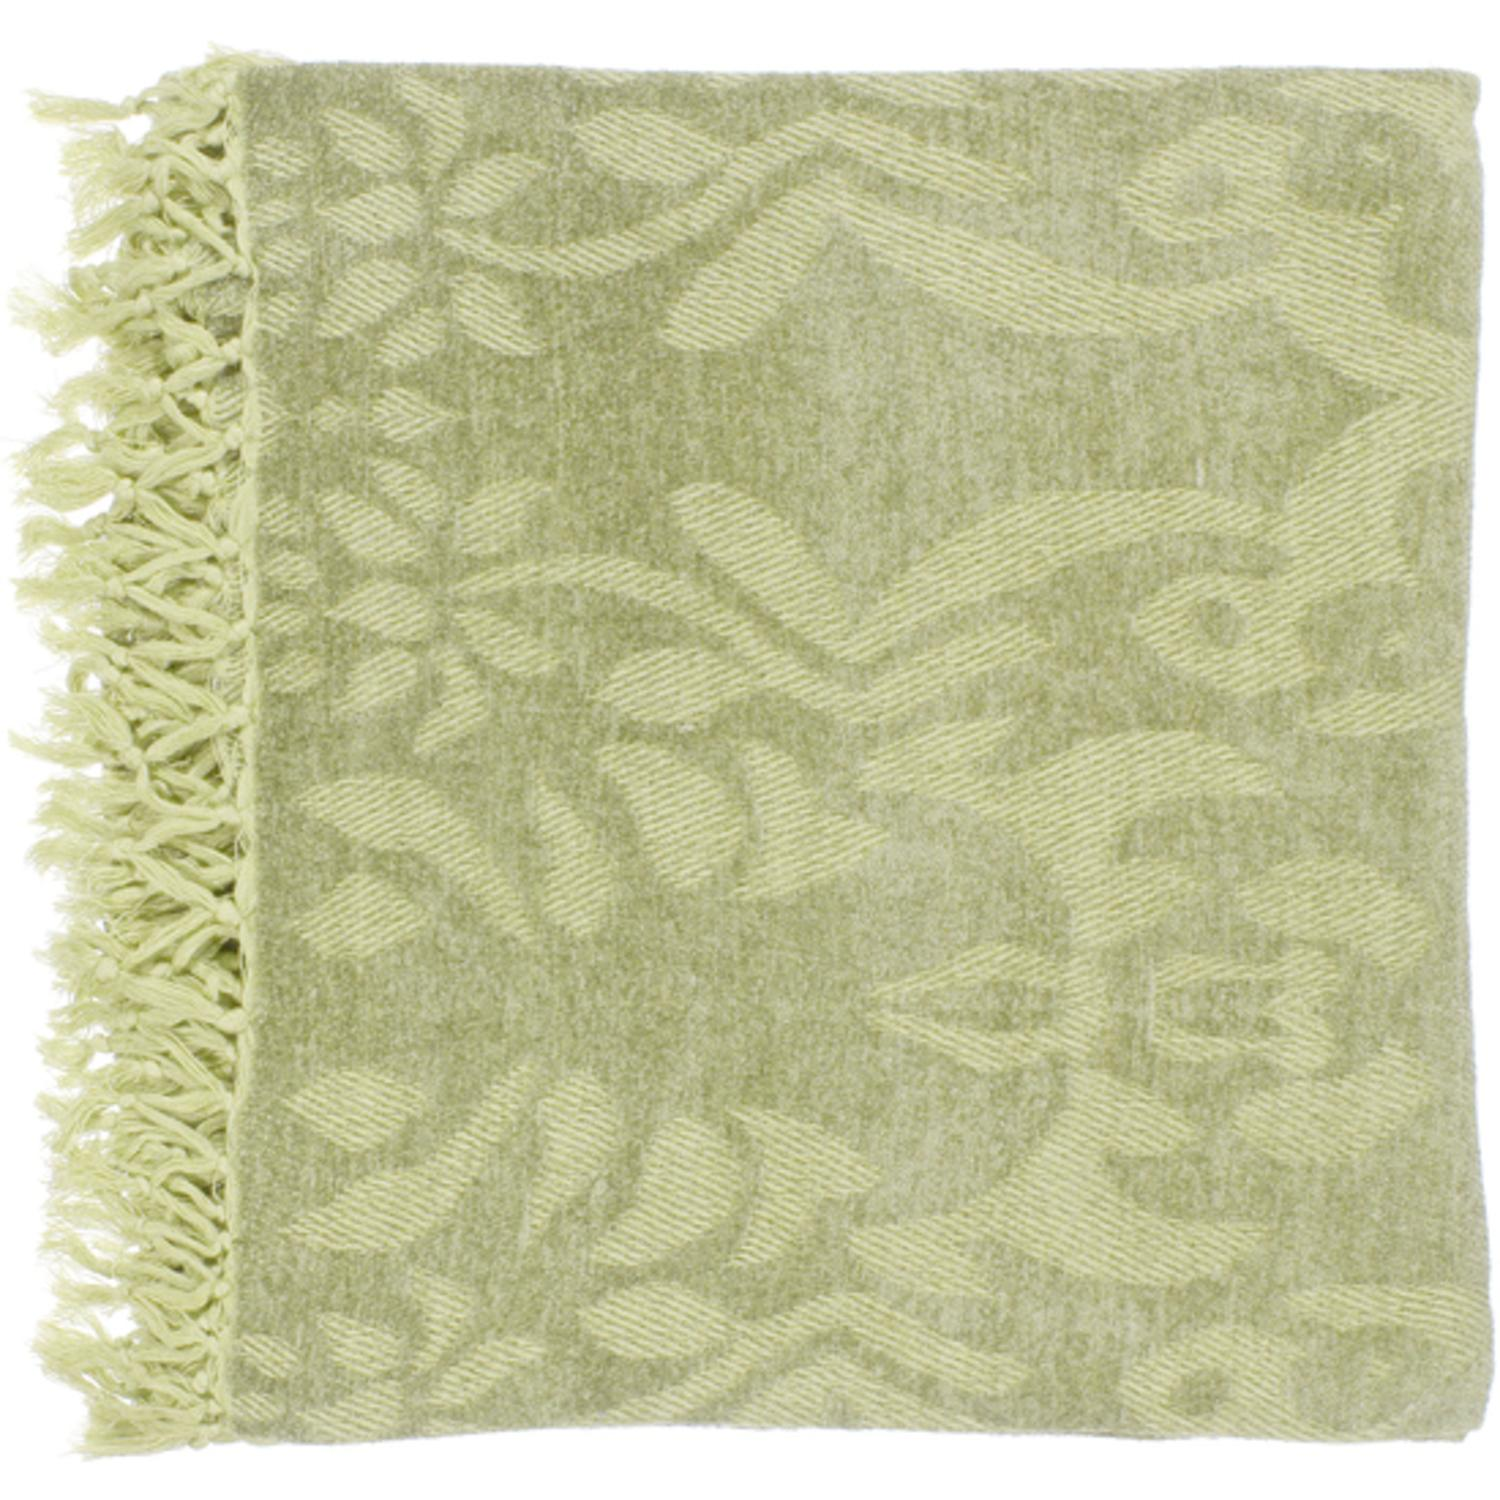 "50"" x 70"" Floral Scroll Fern Green Viscose Throw Blanket"